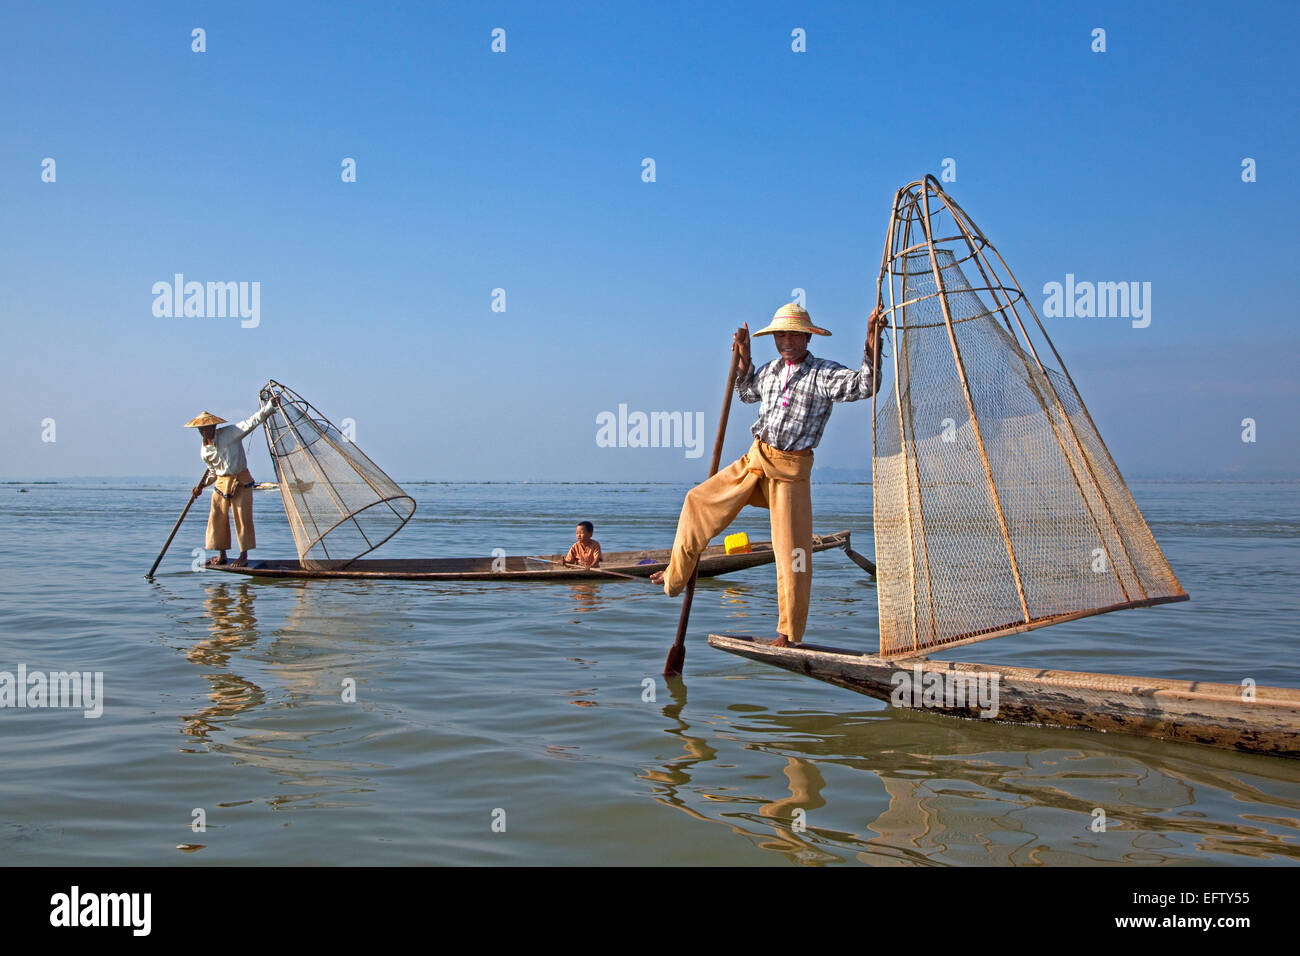 Intha fishermen steering traditional fishing boat by wrapping leg around oar, Inle Lake, Nyaungshwe, Shan State, - Stock Image